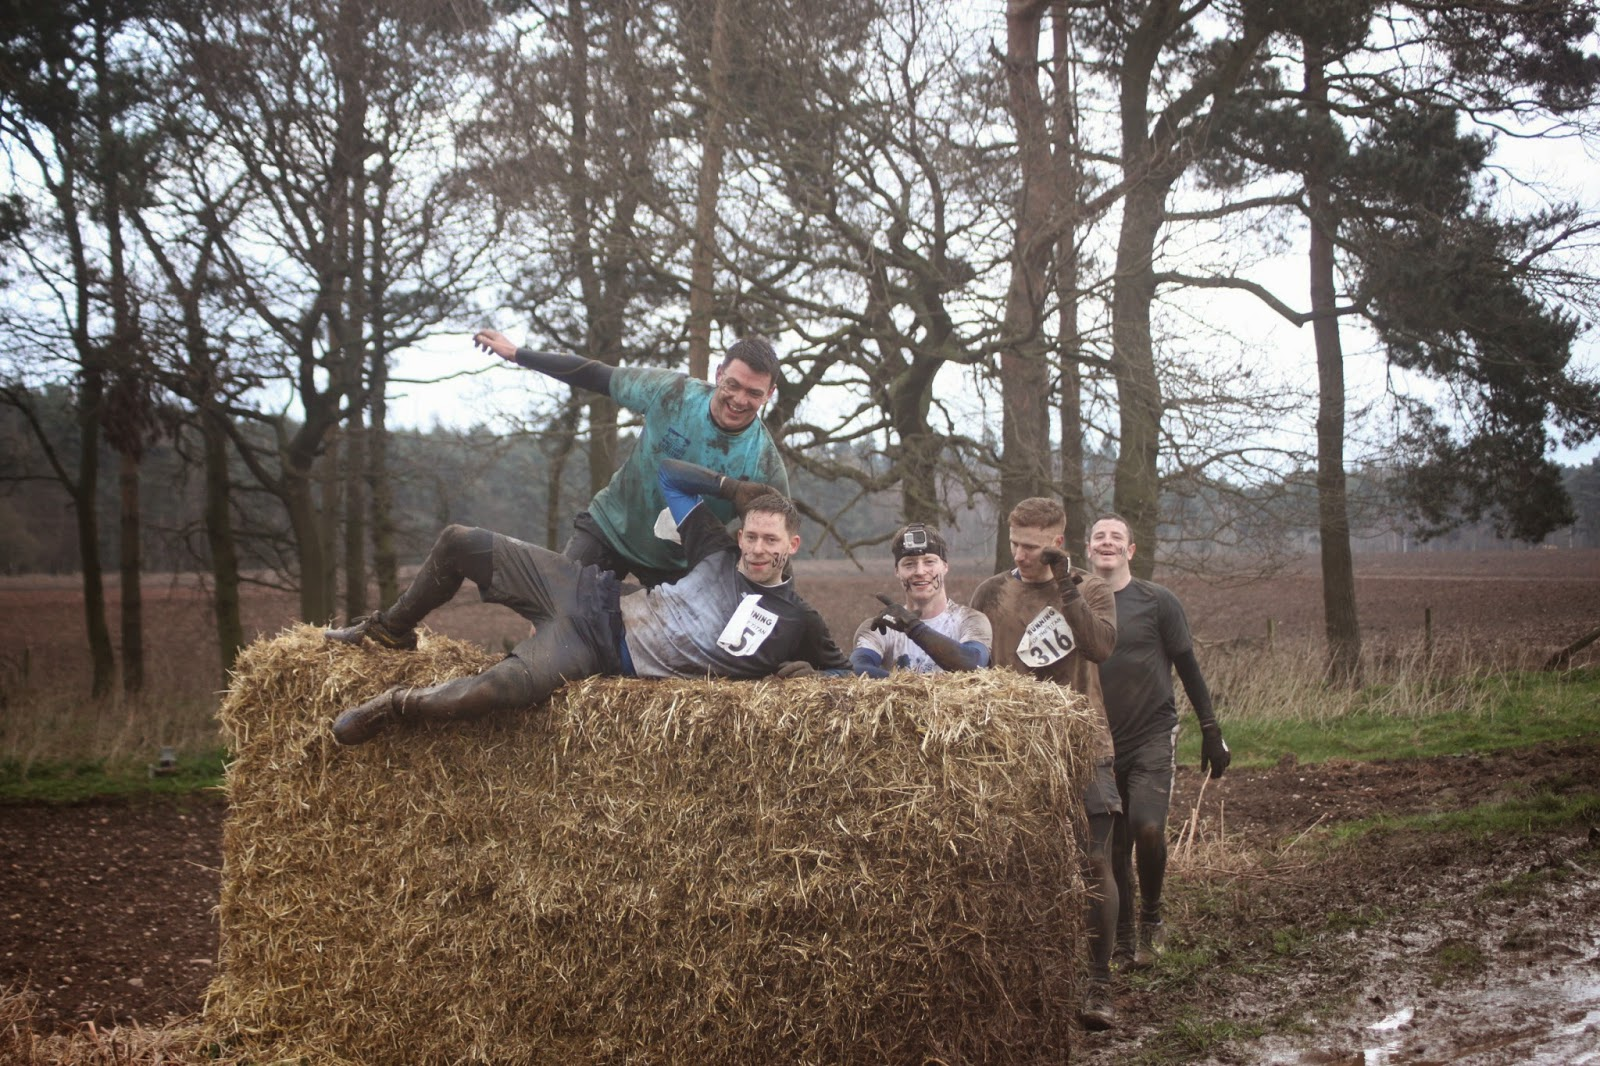 Dirty muddy thirties loads of awesome spartan race team name ideas